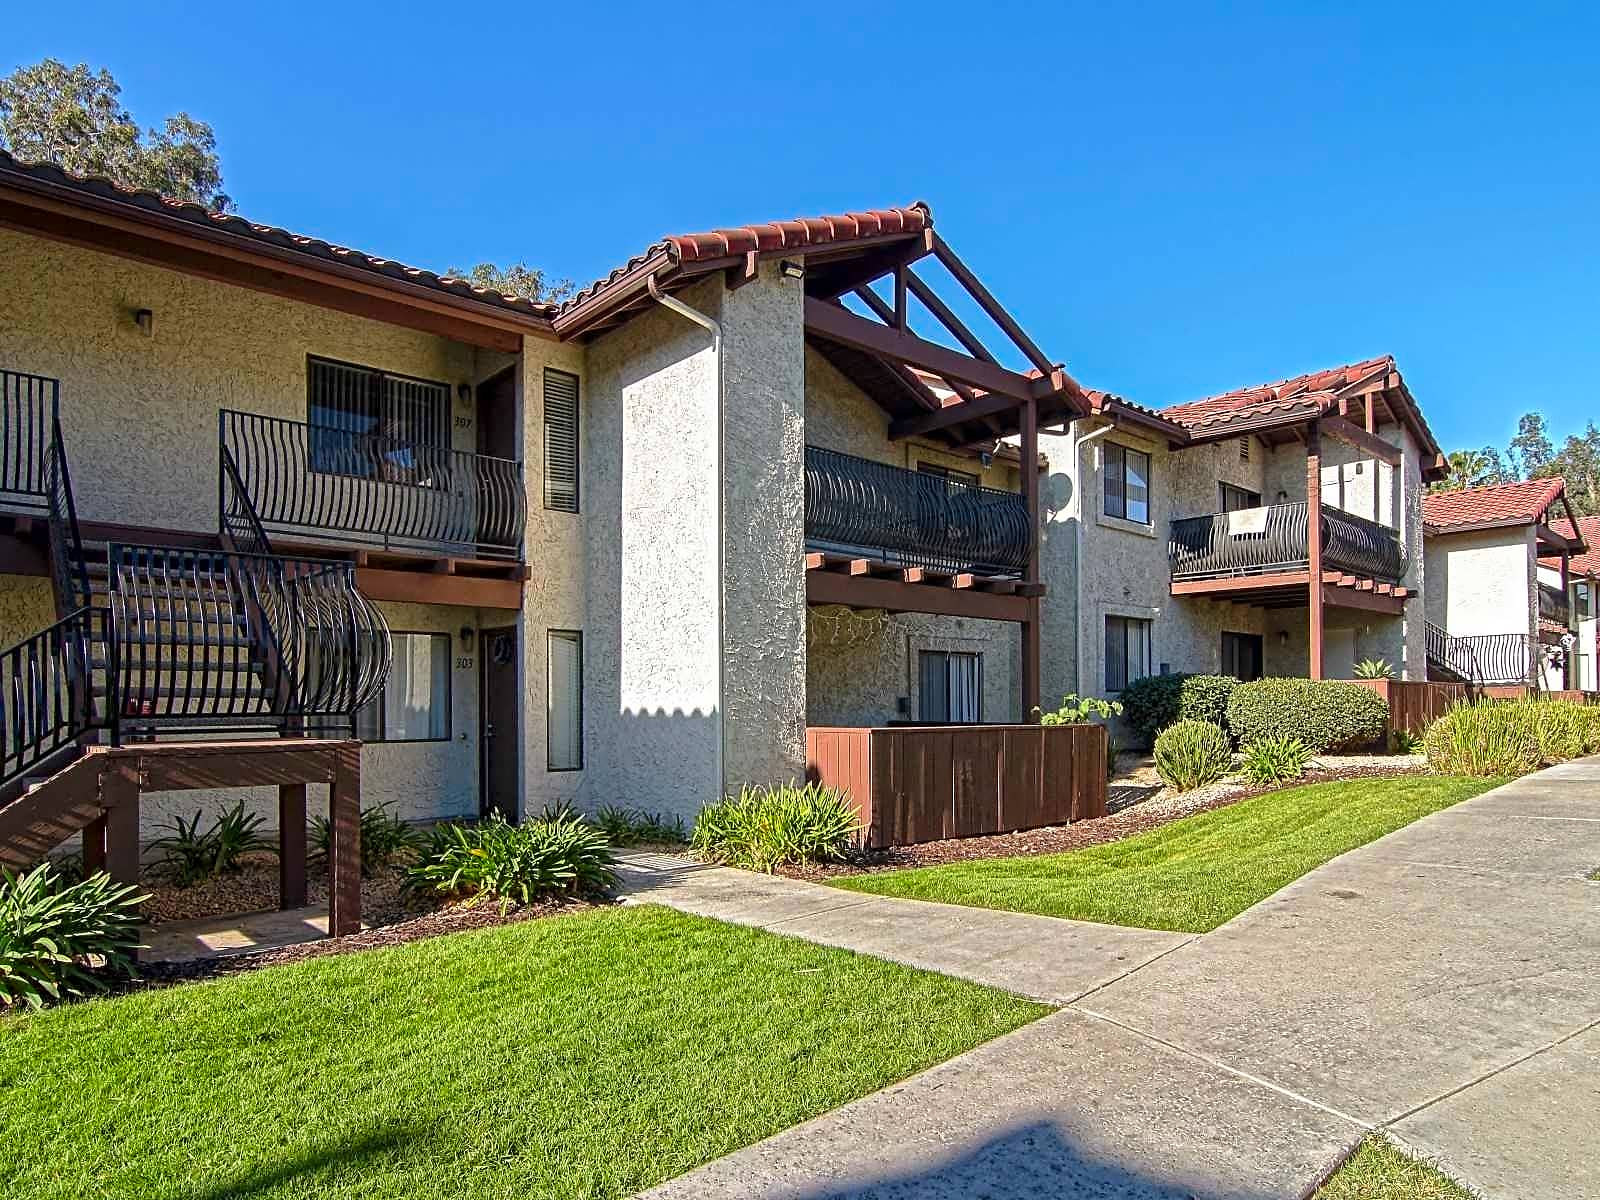 Felicita Creek Apartments In Escondido